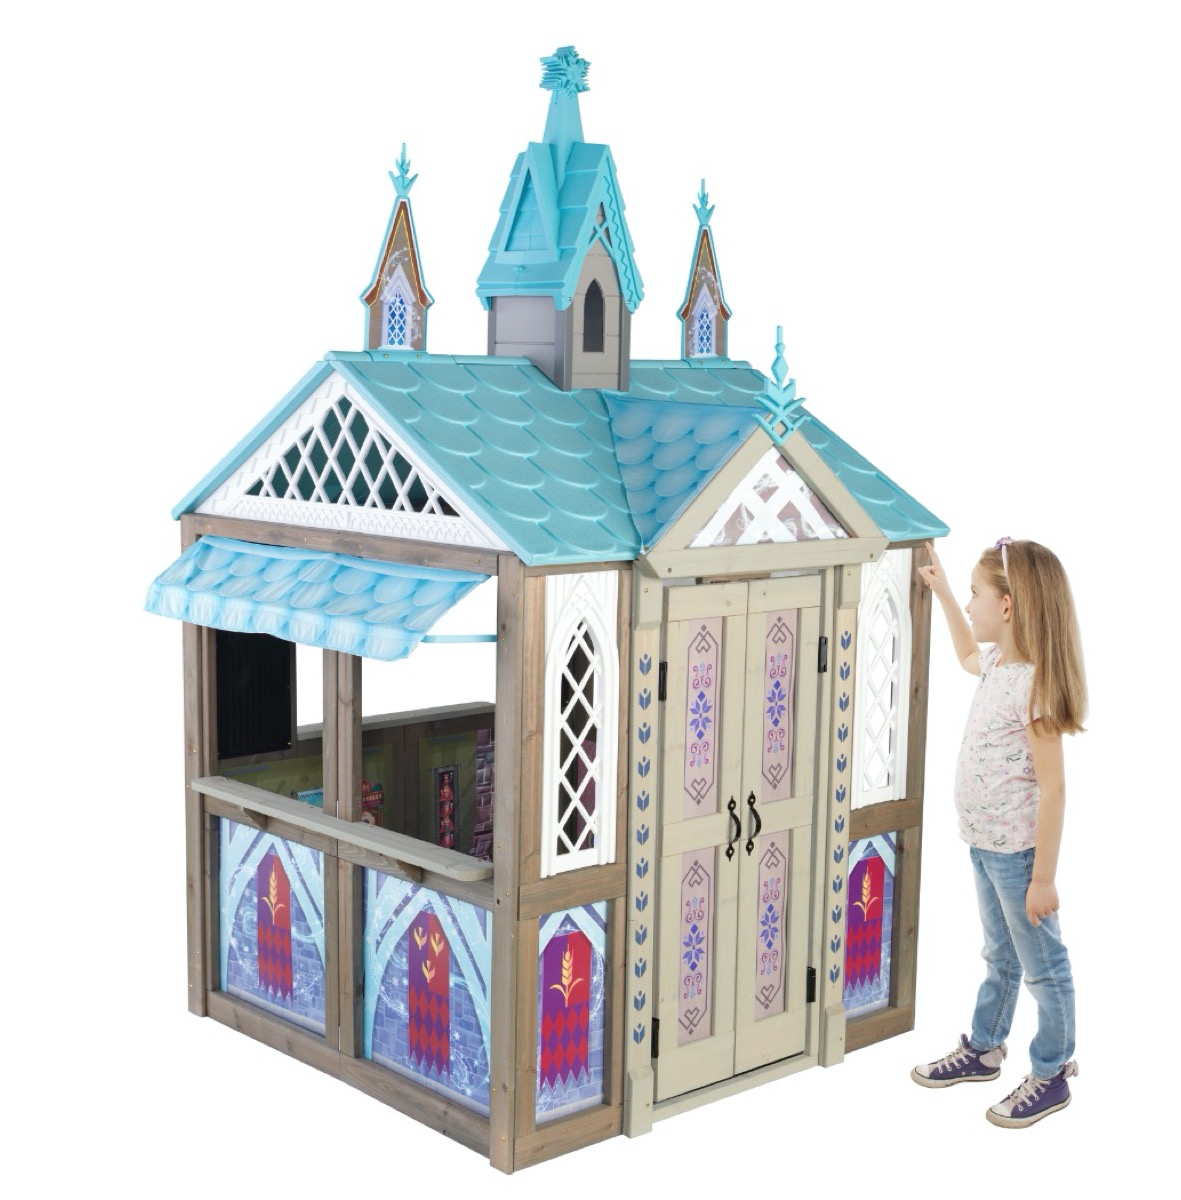 castle-themed wooden playhouse with blue top